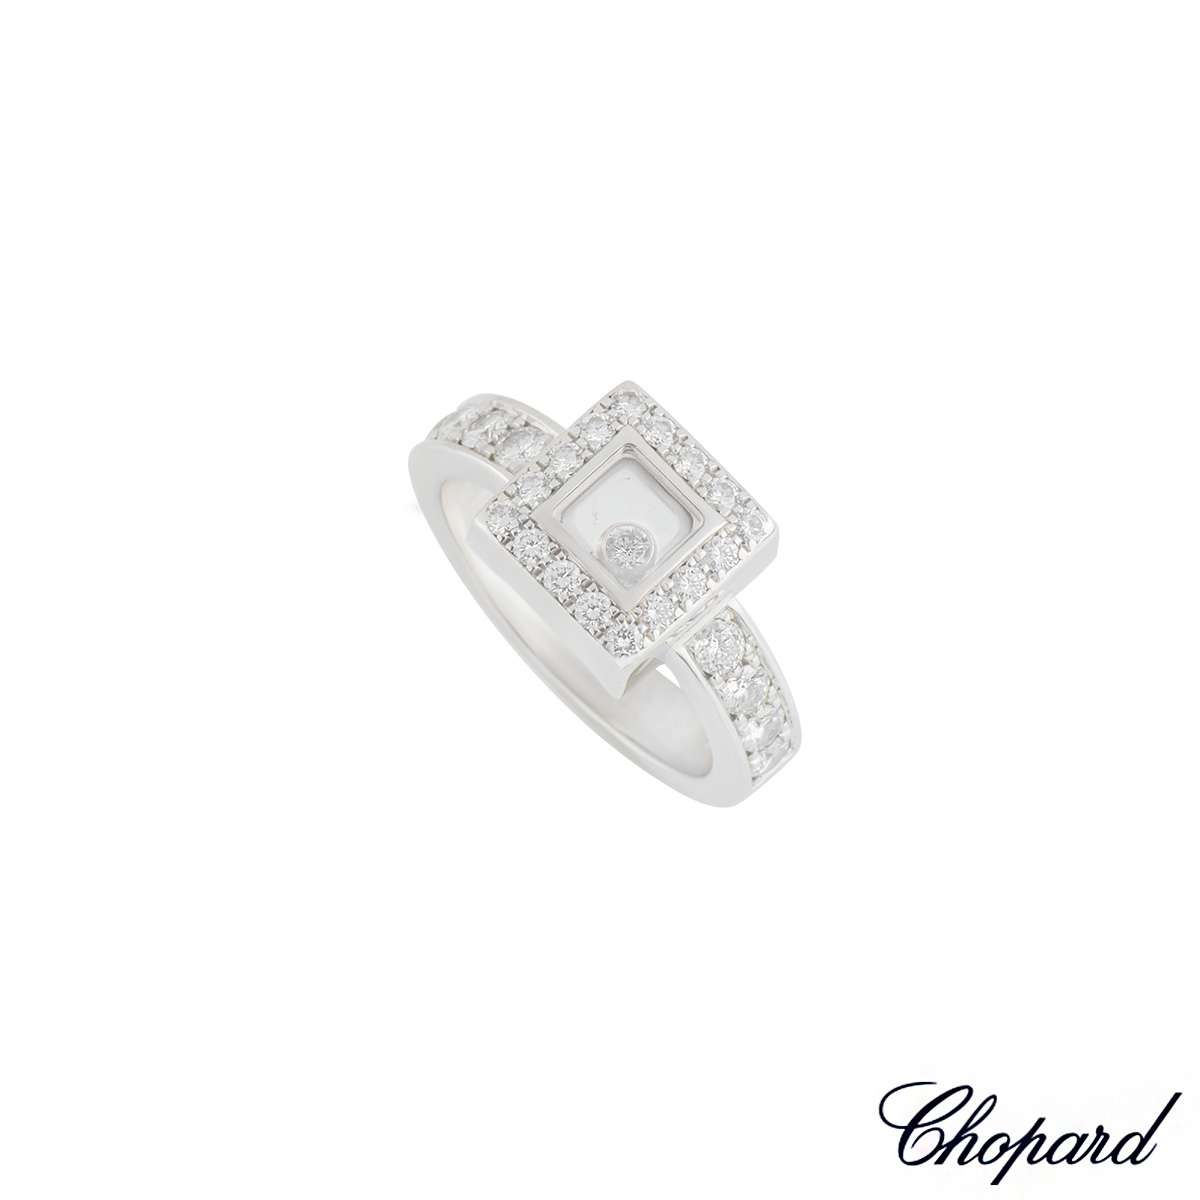 Chopard 18k Happy Square Ring 82/12939-20